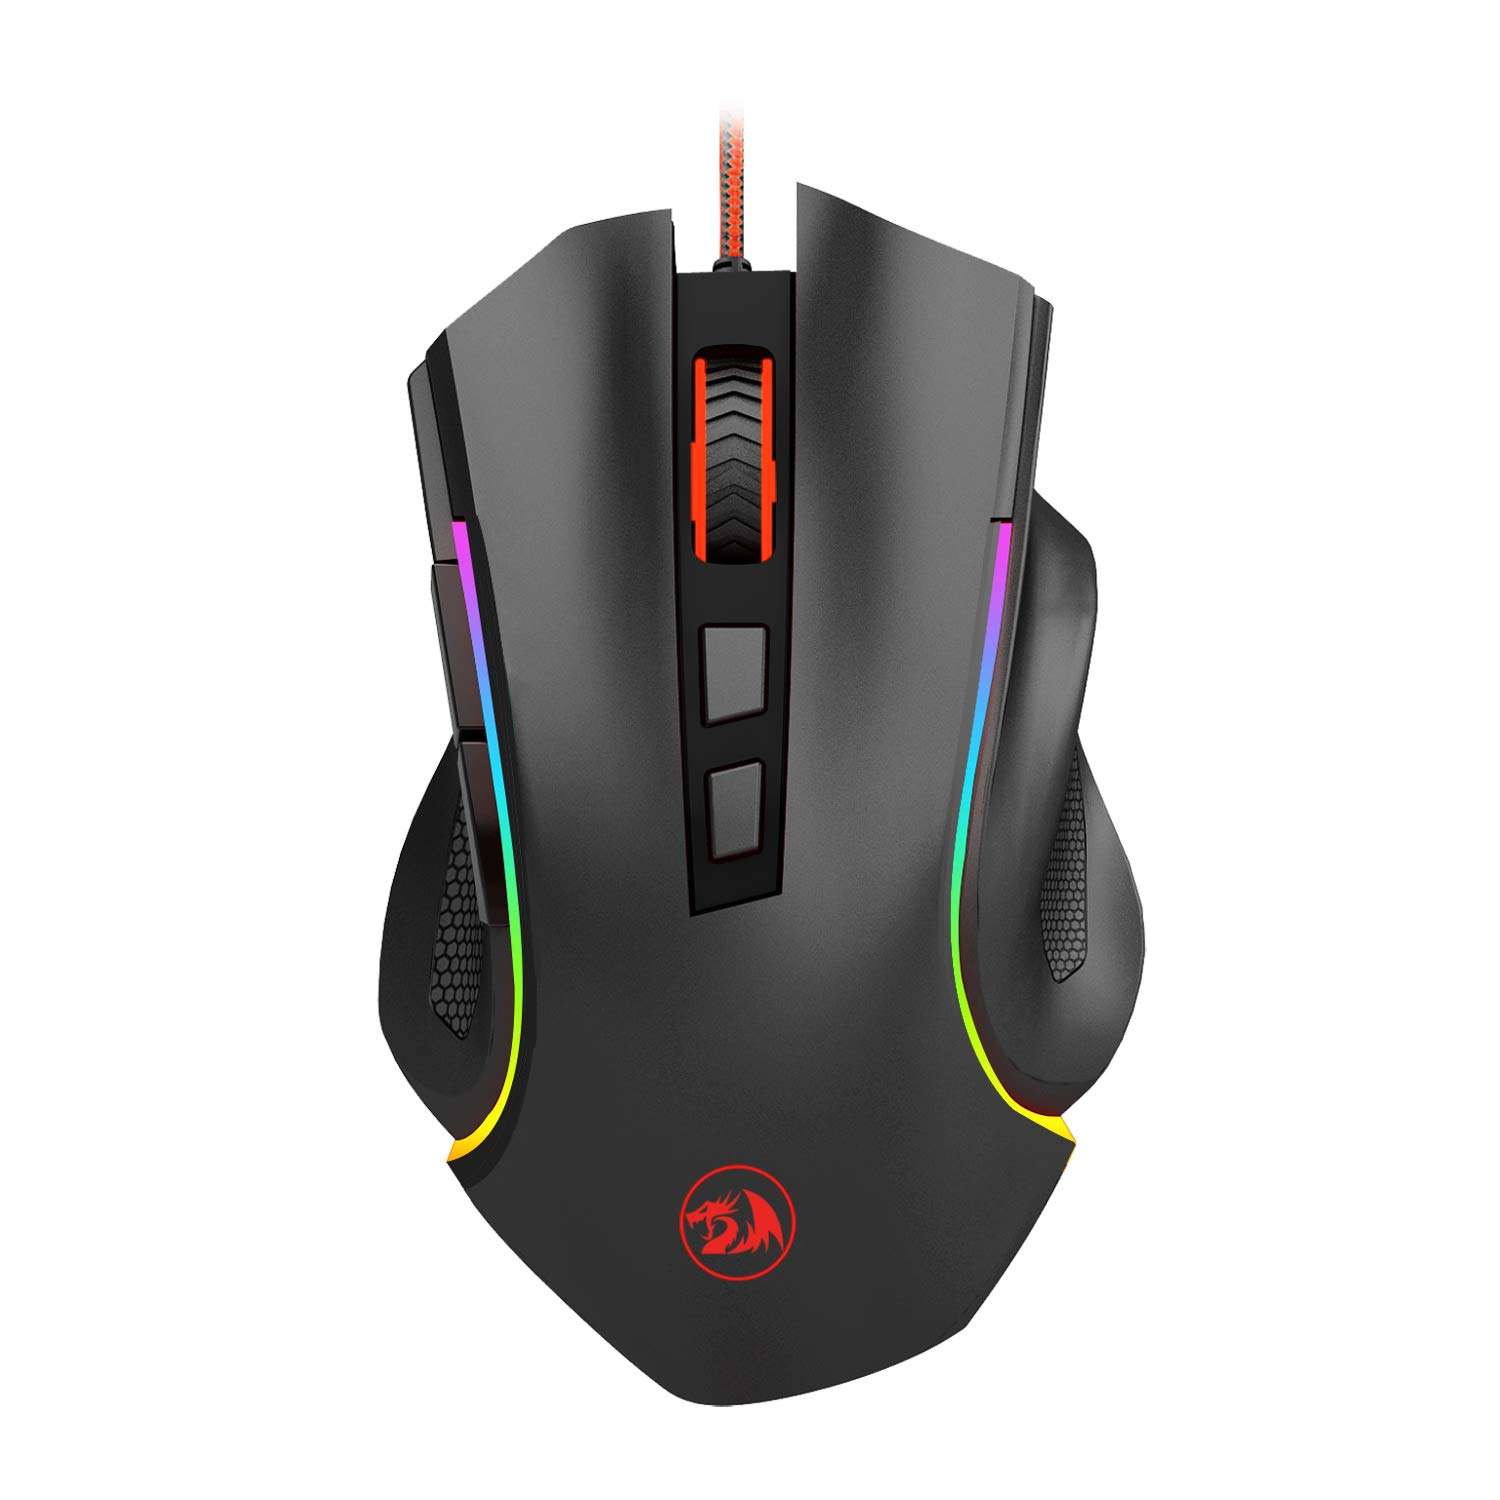 Redragon M602 RGB Wired Gaming Mouse RGB Spectrum Backlit Ergonomic Mouse Griffin Programmable with 7 backlight modes up to 7200 DPI for Windows PC Gamers [Black] by Redragon